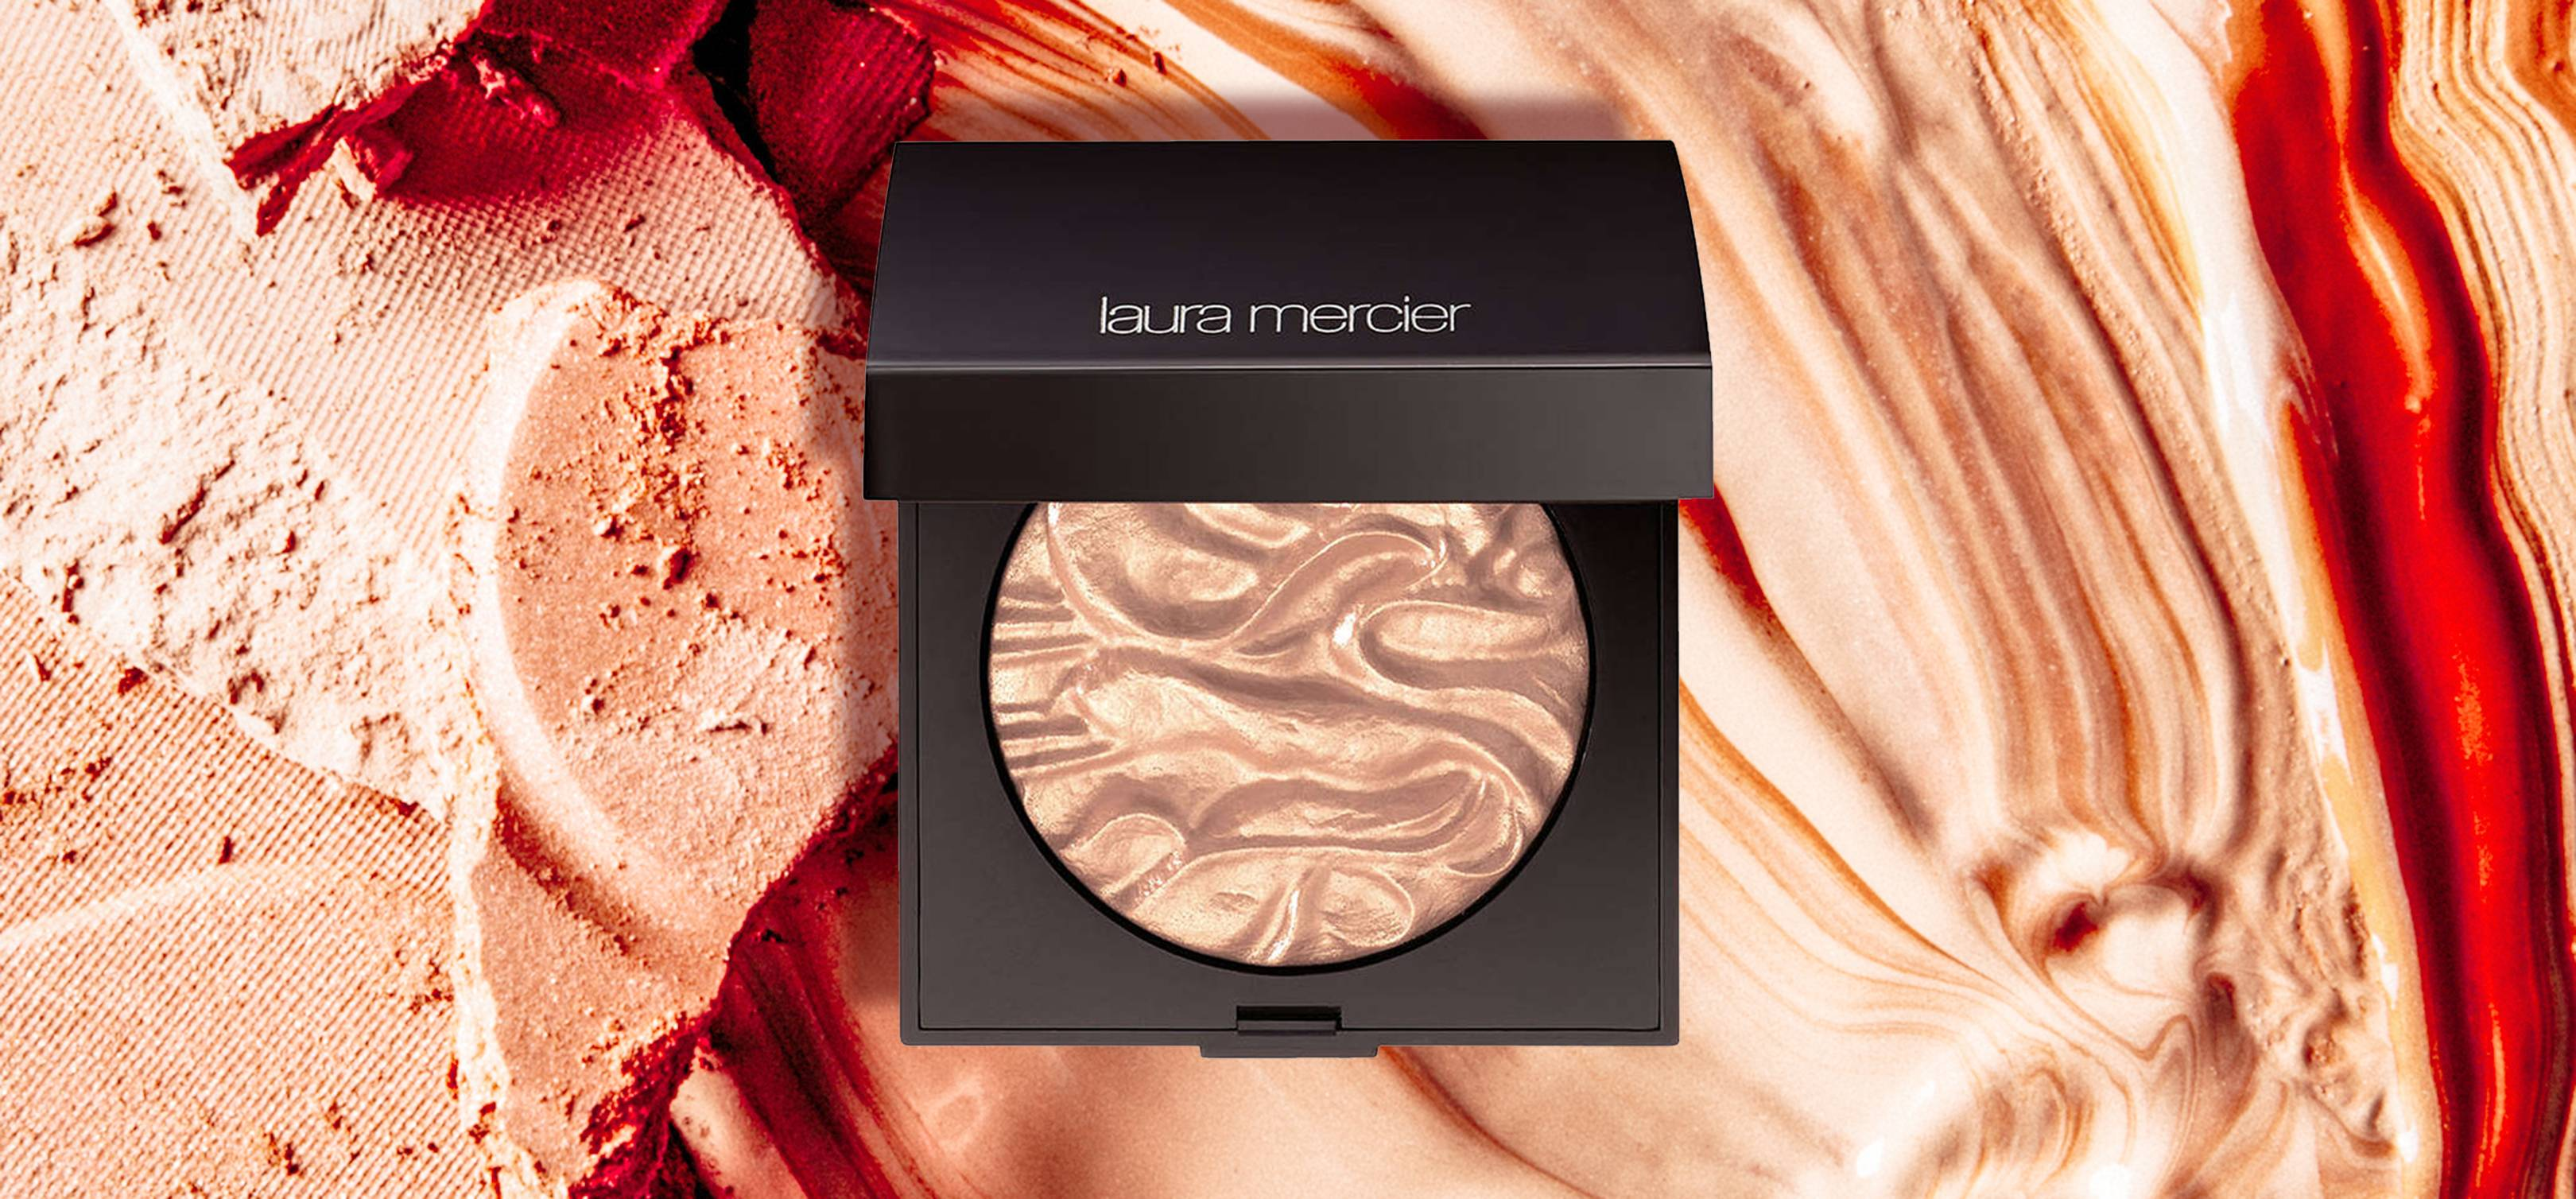 Best Highlighter 2018 Top Face Strobing Products Glamour Uk Focallure Glitter And Glow Liquid Eyeshadow